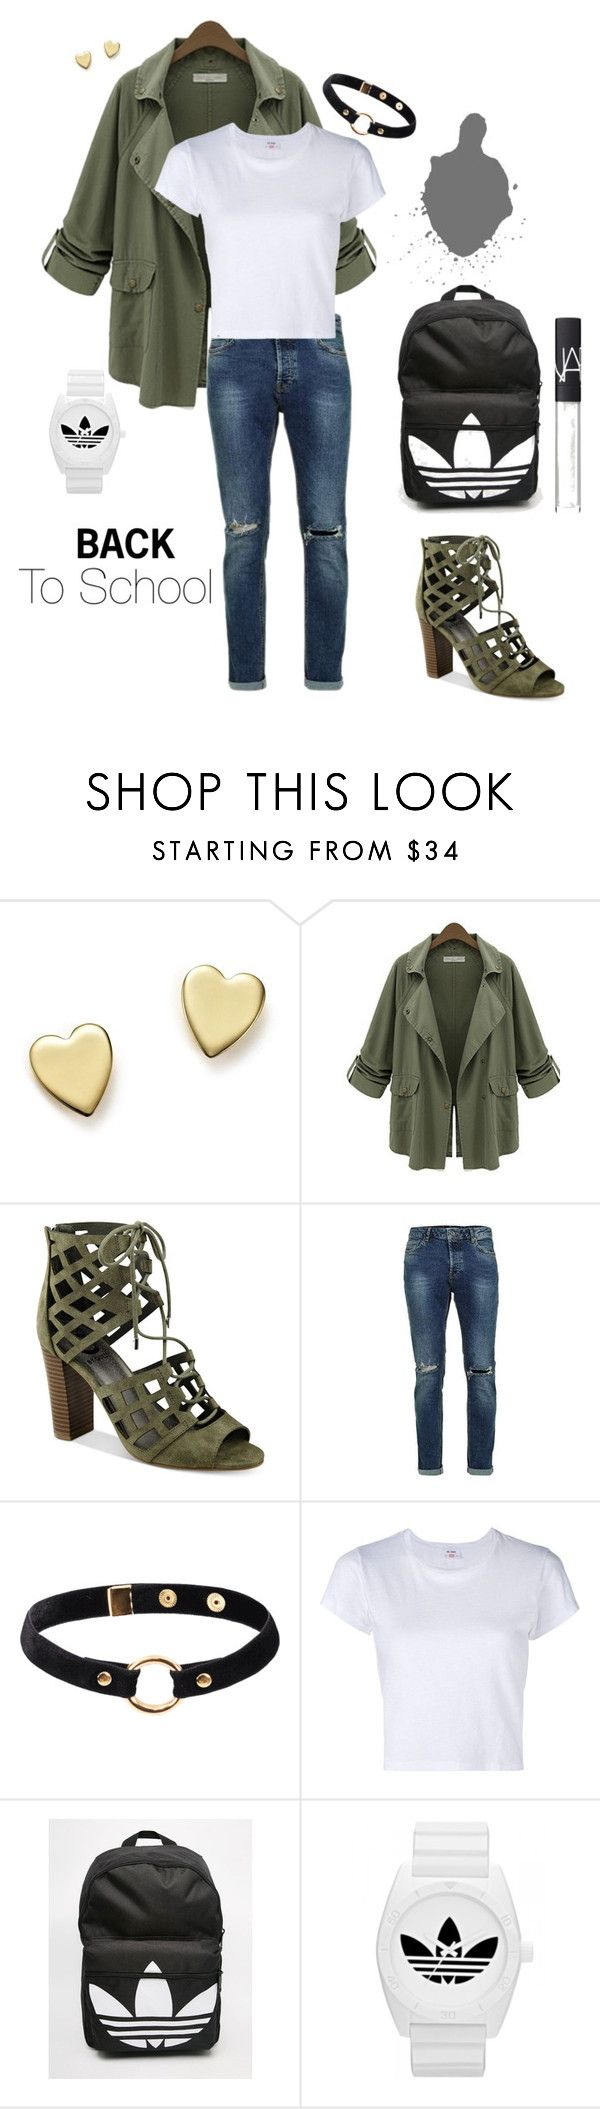 """""""Back to School"""" by poshcandies ❤ liked on Polyvore featuring Bloomingdale's, Chicnova Fashion, G by Guess, Nika, RE/DONE, adidas, NARS Cosmetics, BackToSchool, Heels and olive"""